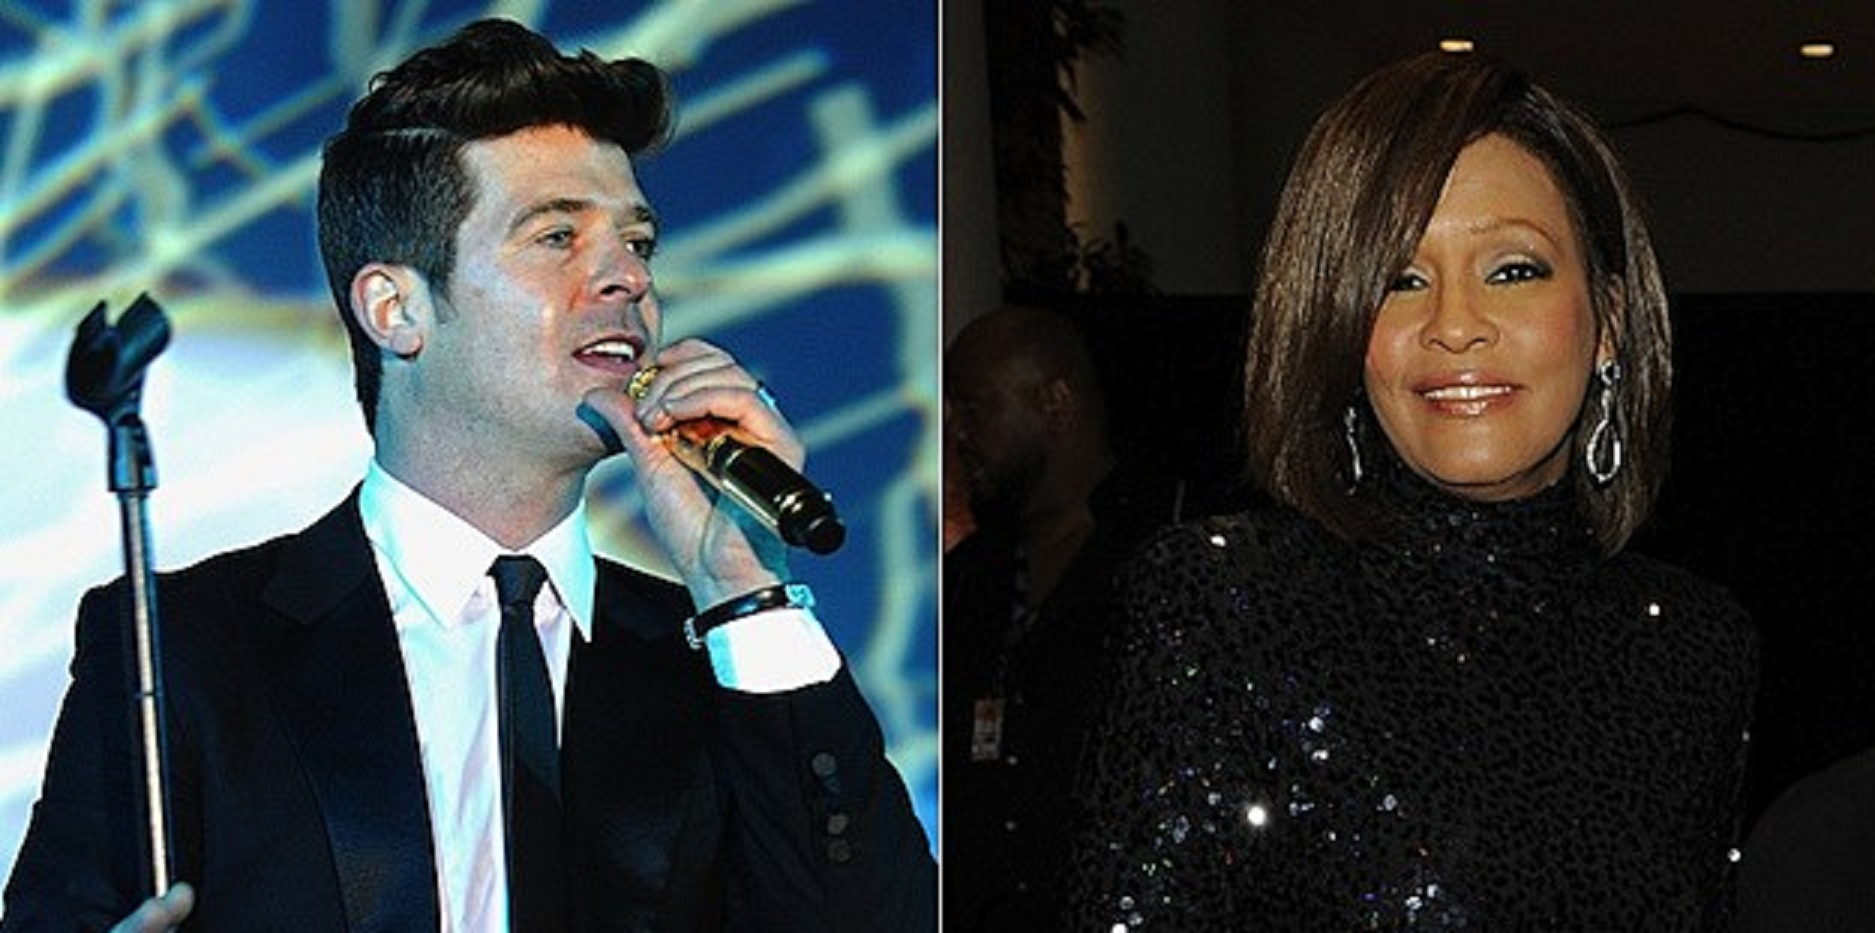 Unearthing This Stunning 'Exhale' Mashup Between Whitney Houston And Robin Thicke!